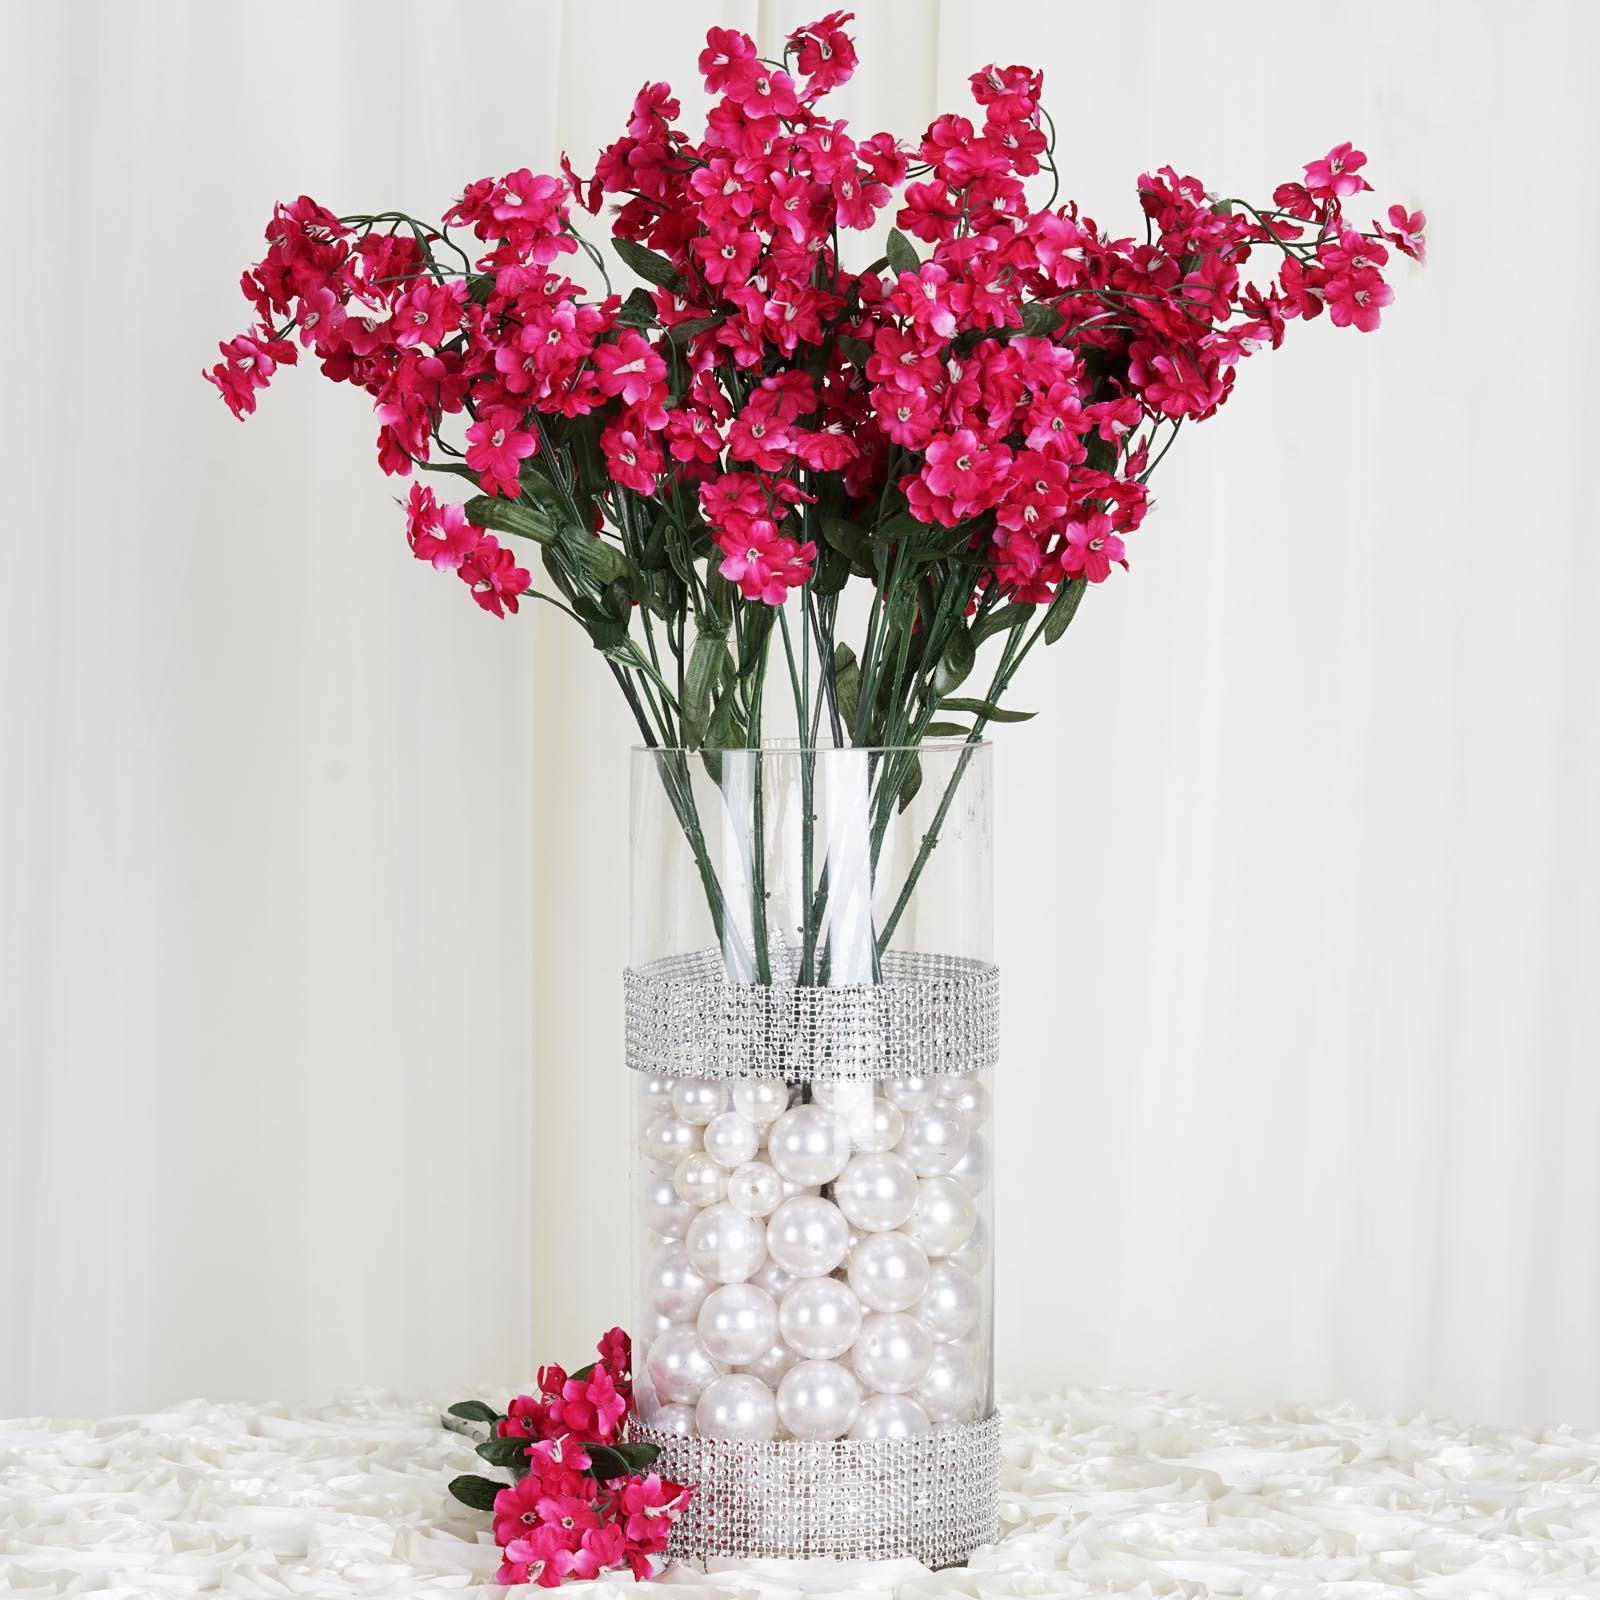 Efavormart 12 bushes BABY BREATH Artificial FILLER FLOWERS for DIY Wedding Bouquets Centerpieces Arrangements Party Home Decoration